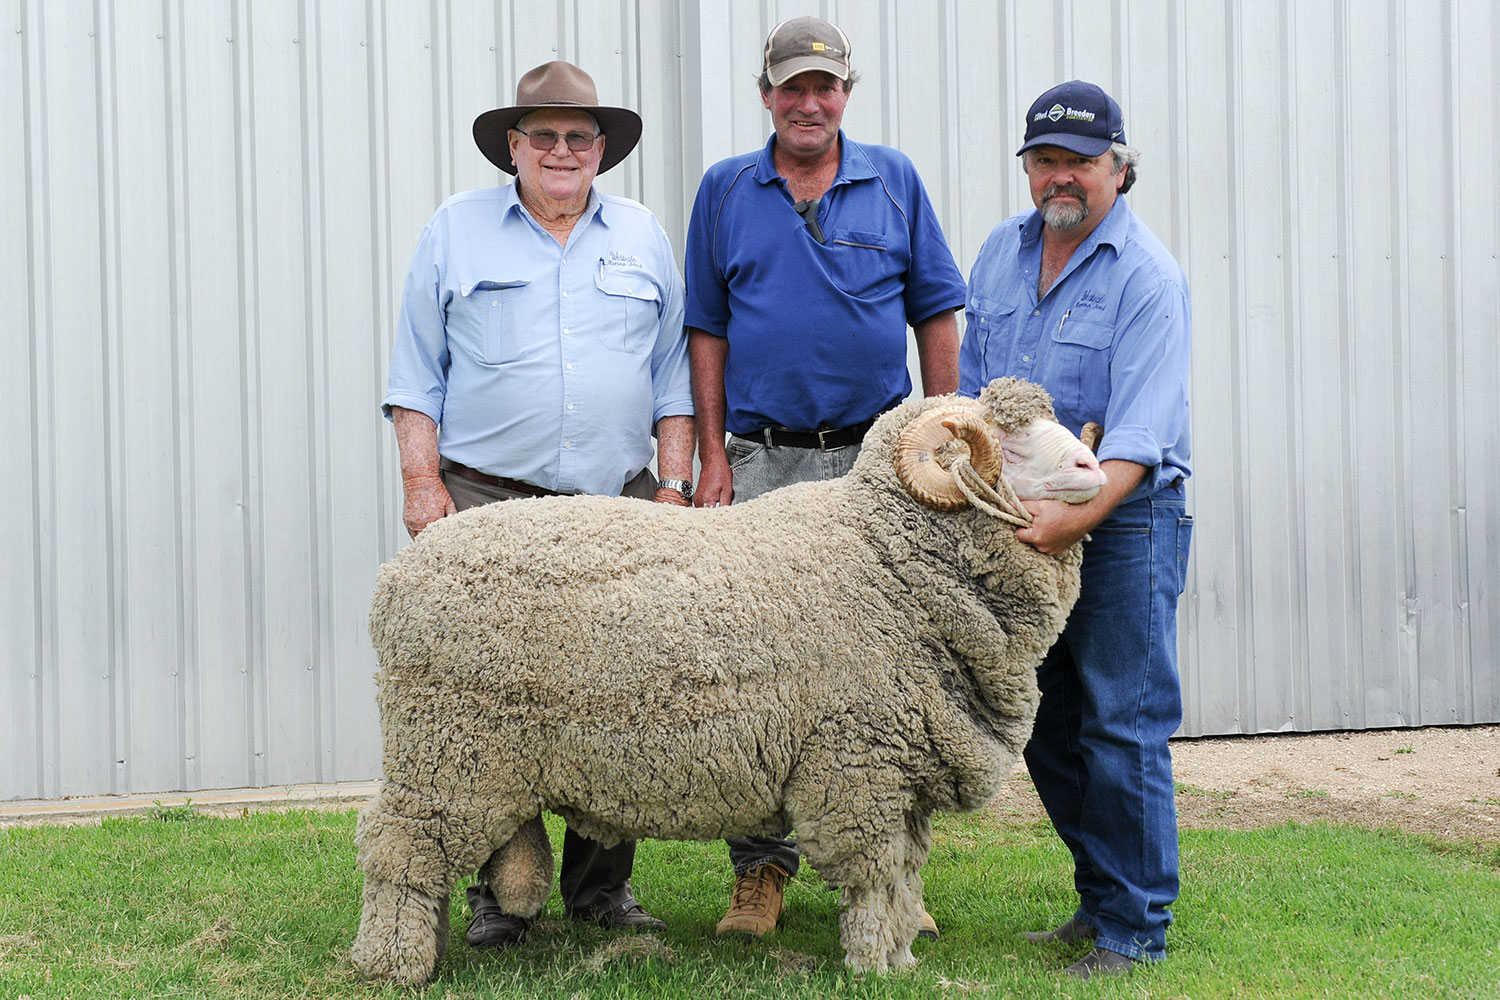 'Westvale Louisville' - Supreme Exhibit at both Tenterfield and Walcha Shows. Ultrafine Ram meas 16.0mc SD 2.4. CV 14.9 Fleece Cut 11kg.